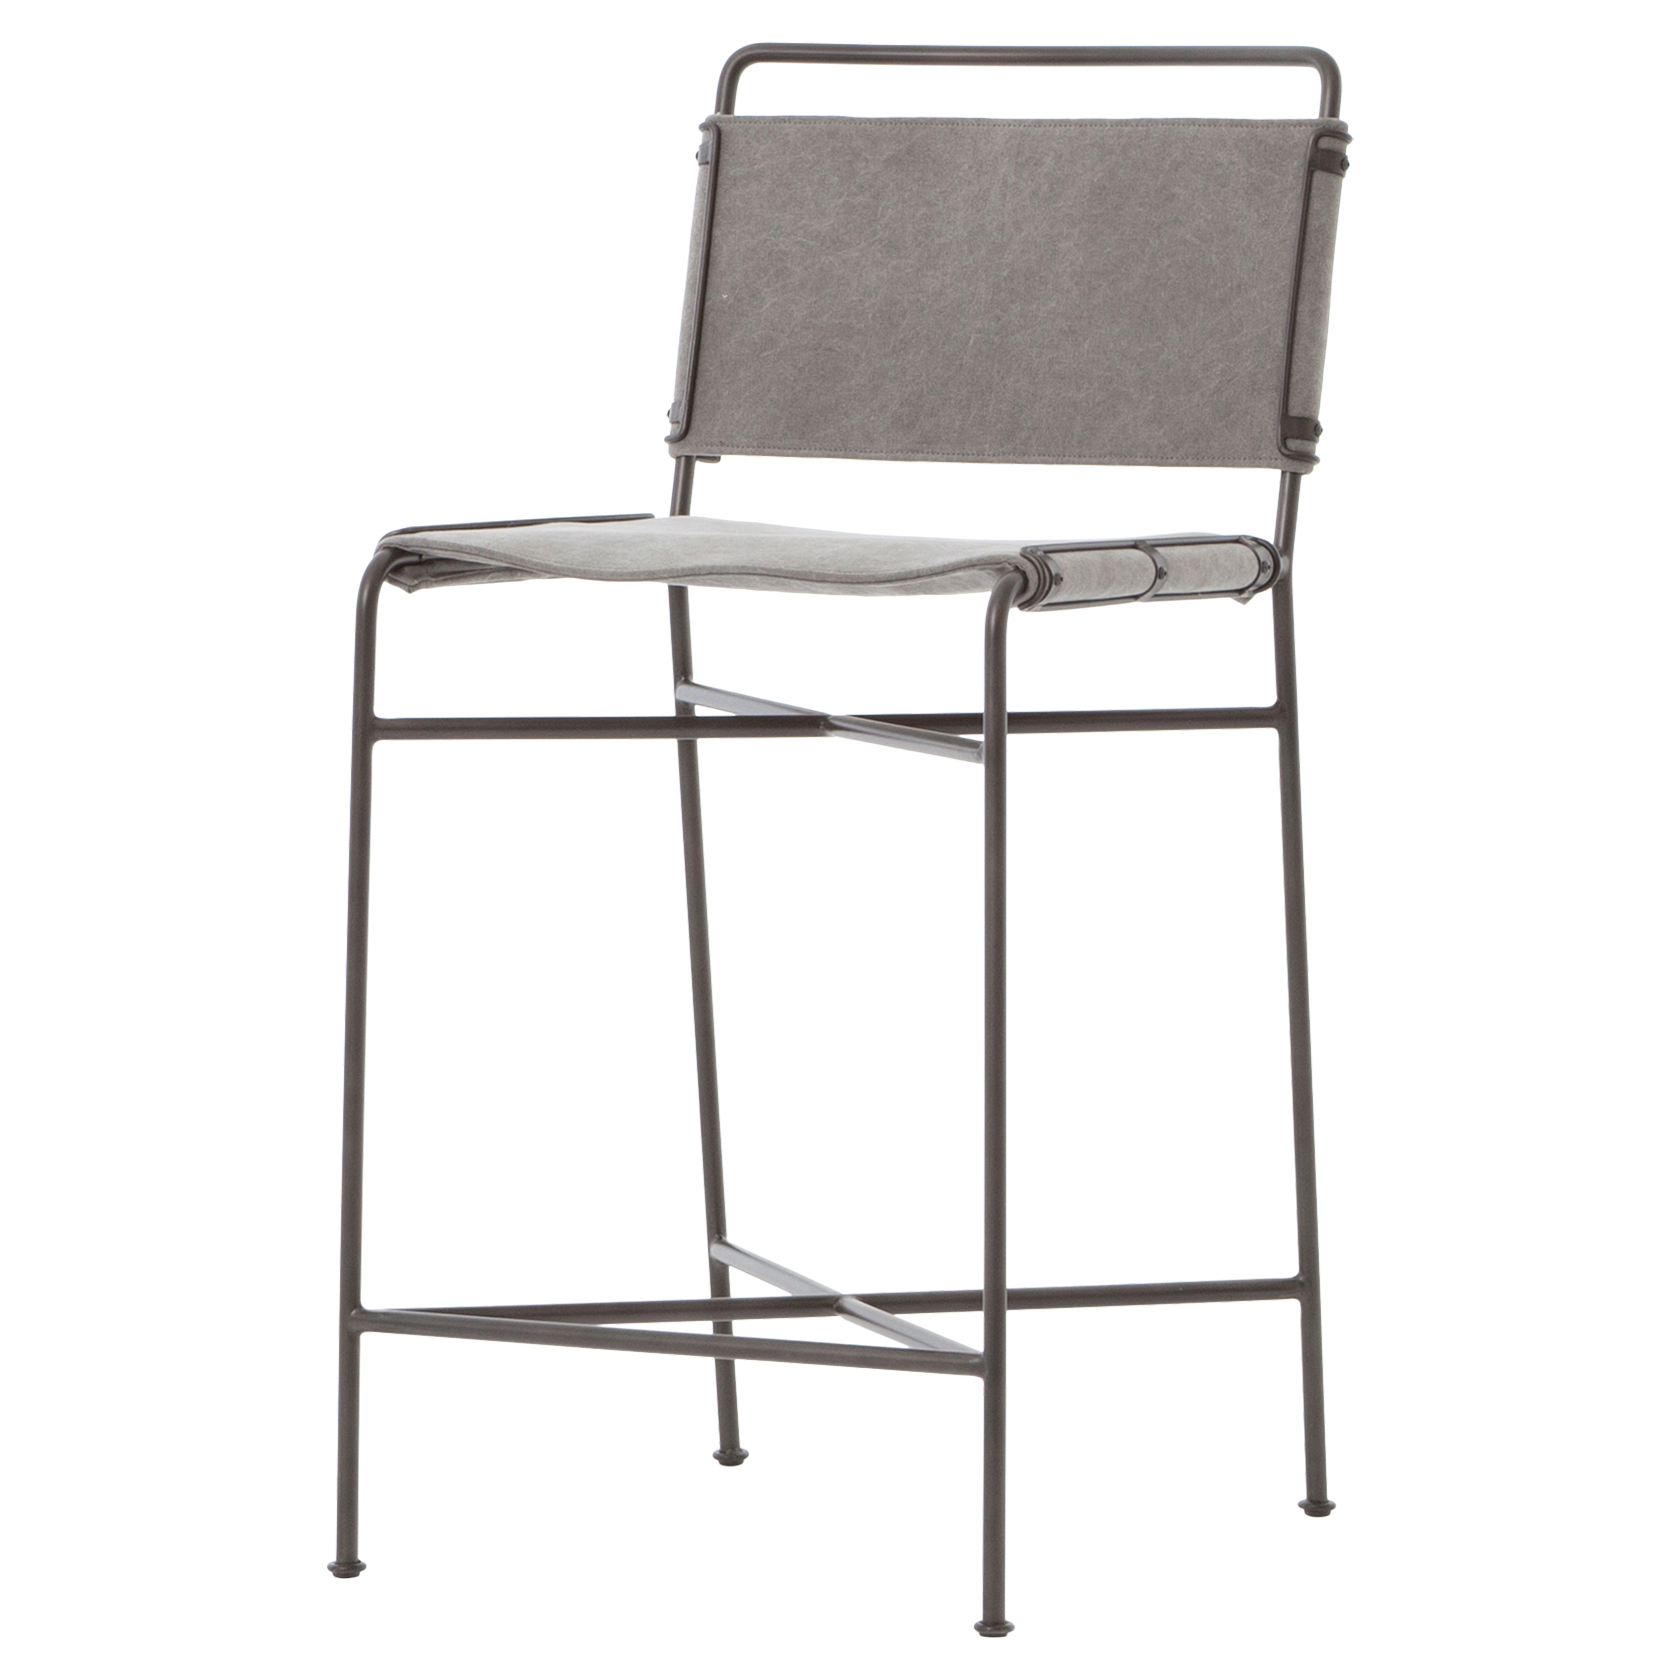 Oxton Industrial Loft Grey Steel Canvas Counter Stool - Pair